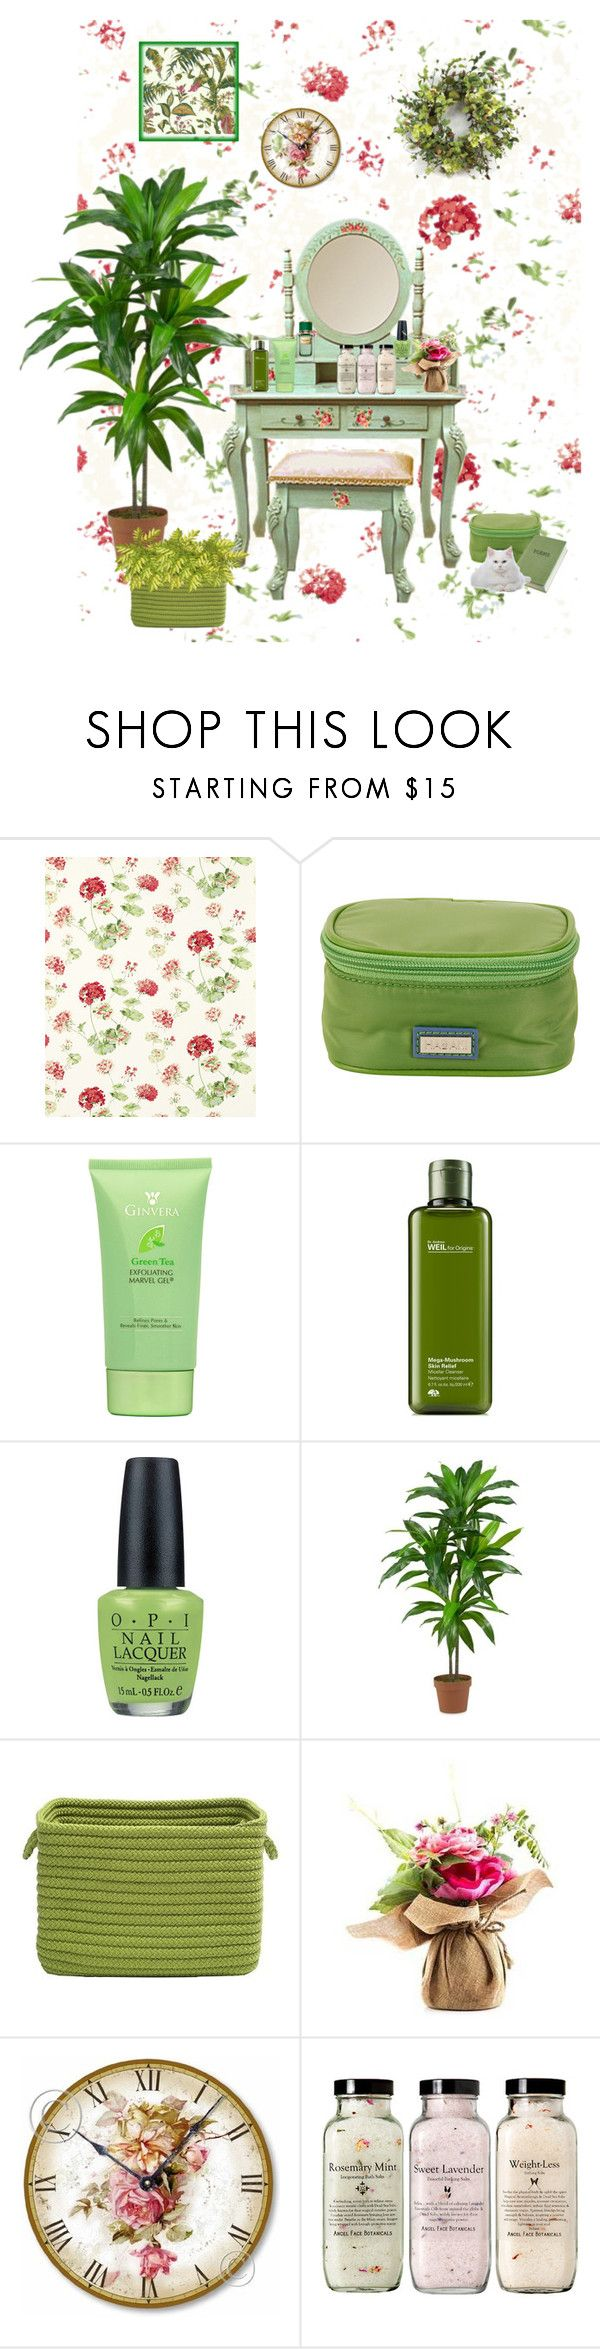 """""""Her Dressing Table"""" by patchworkcrafters ❤ liked on Polyvore featuring beauty, Hadaki, Origins, OPI, Nearly Natural, Home Decorators Collection, WALL, Melrose International and GREEN"""